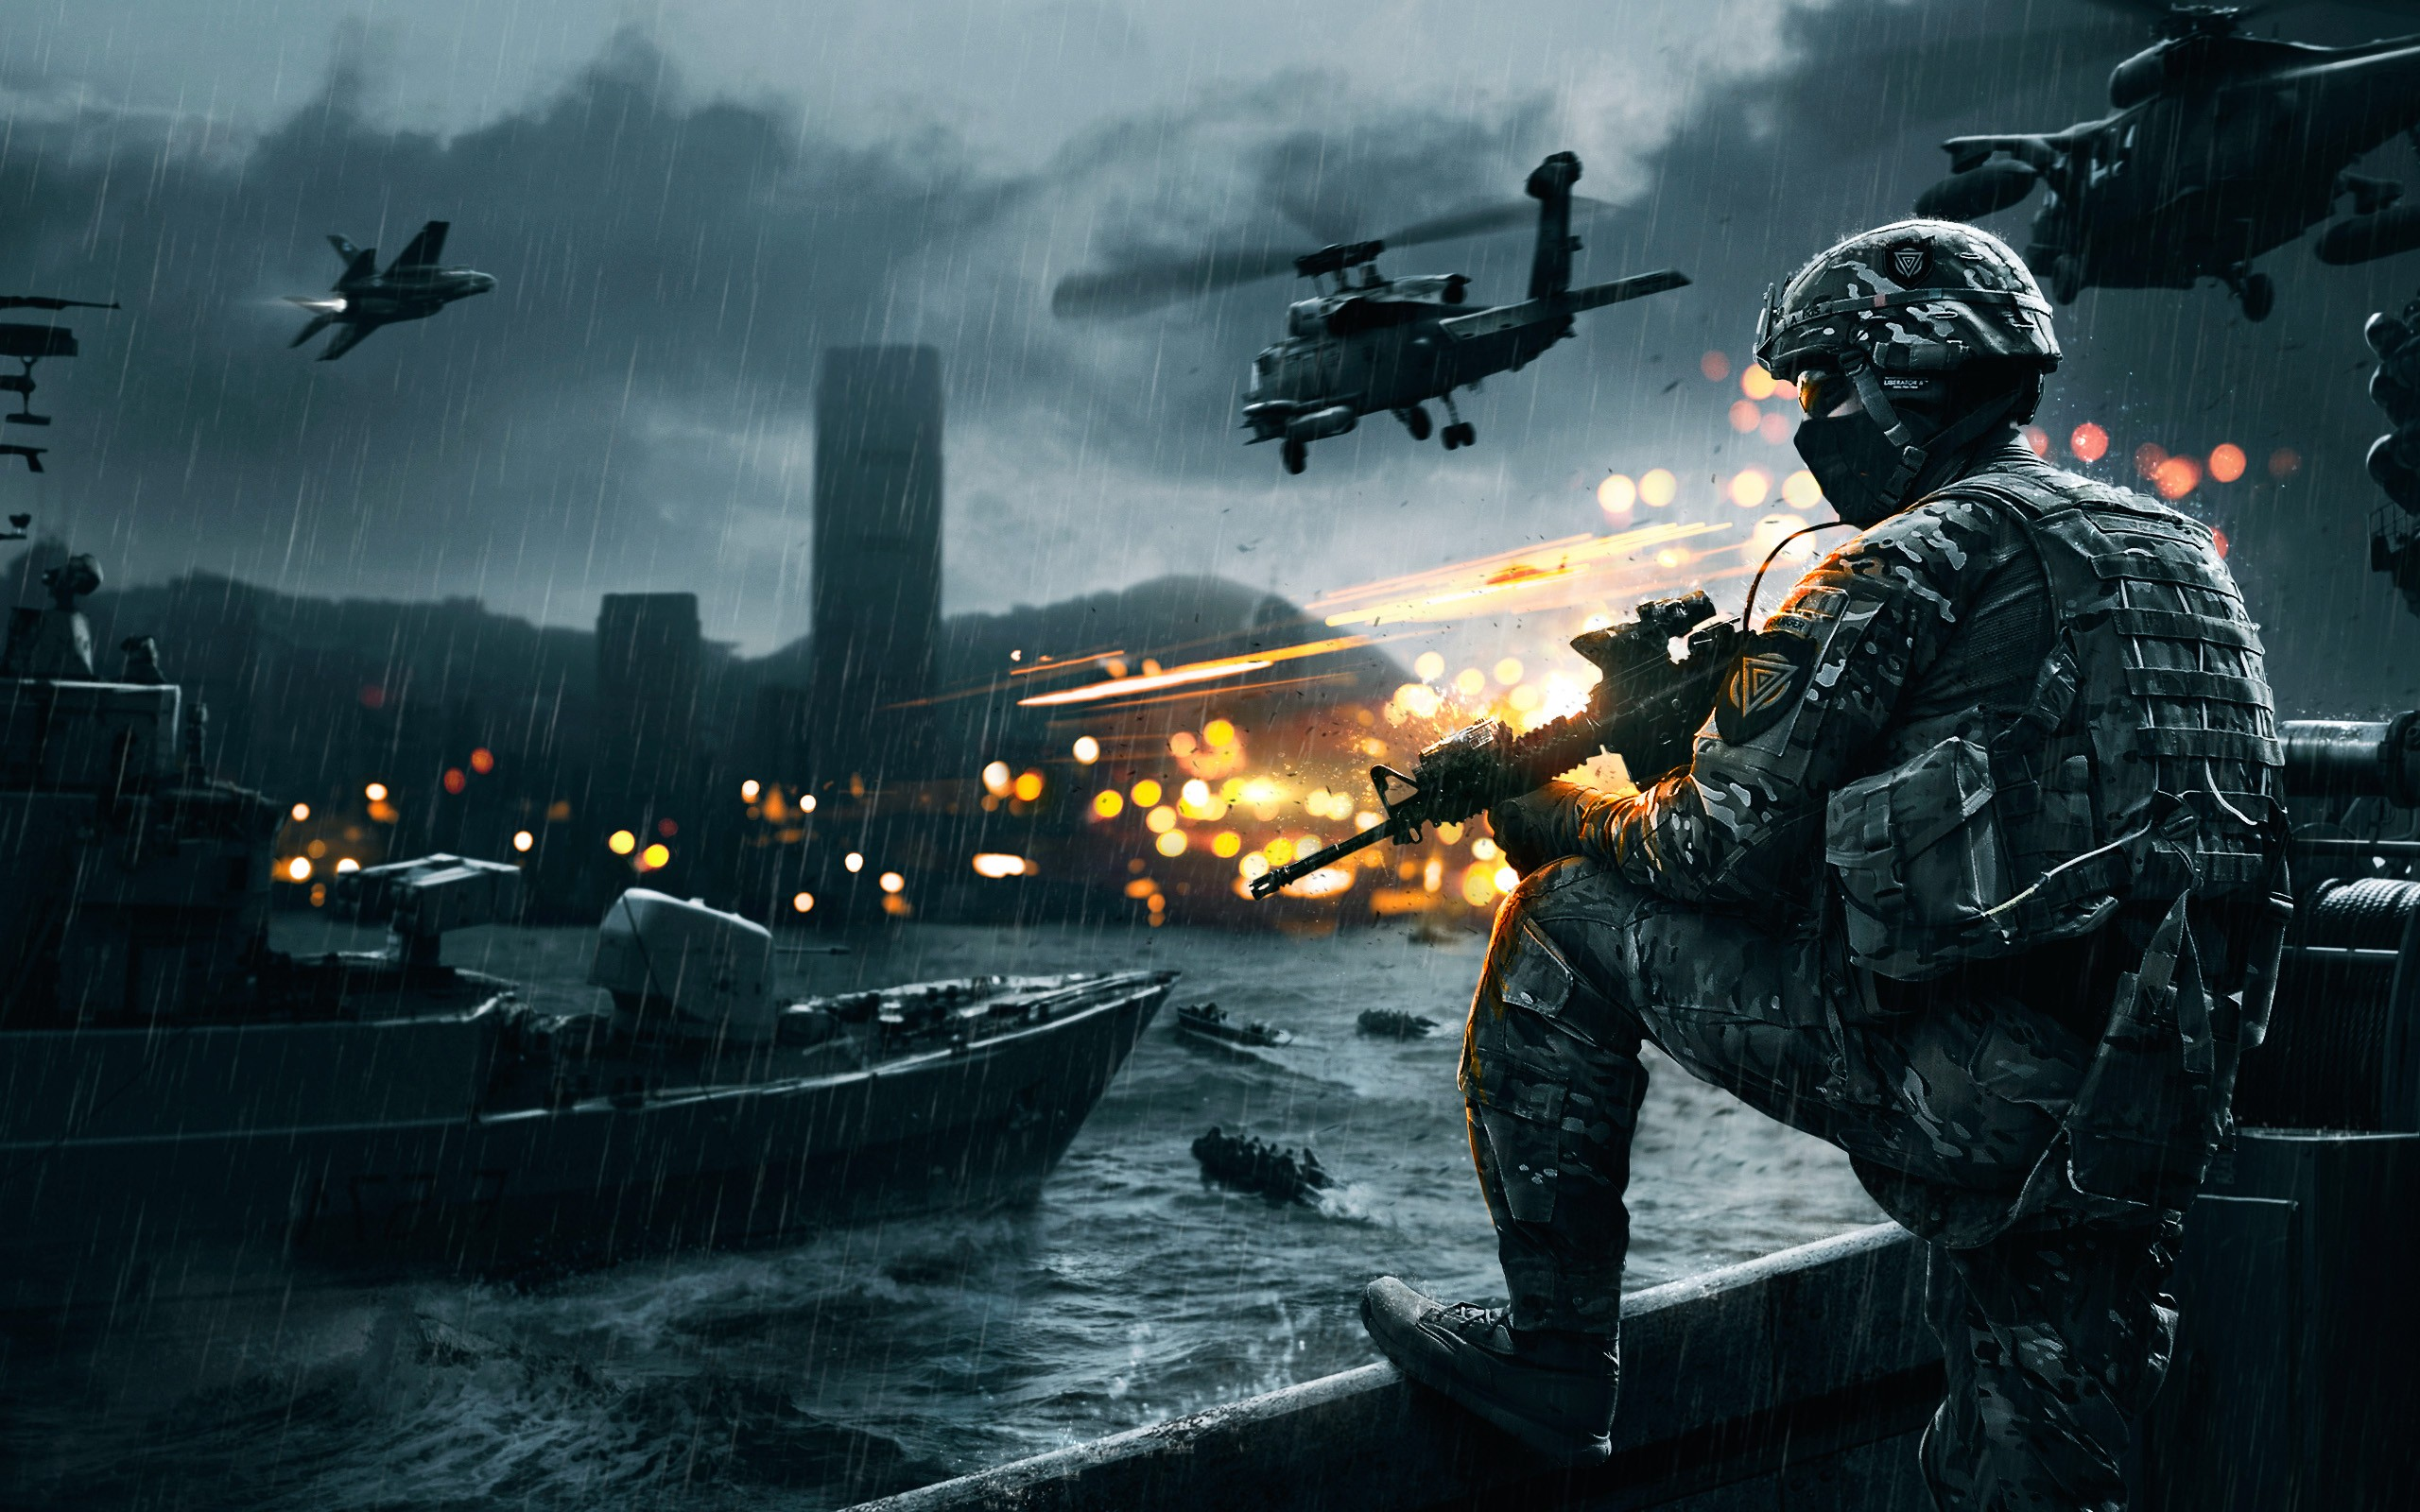 Battlefield 4 Siege of Shanghai 3766.92 Kb